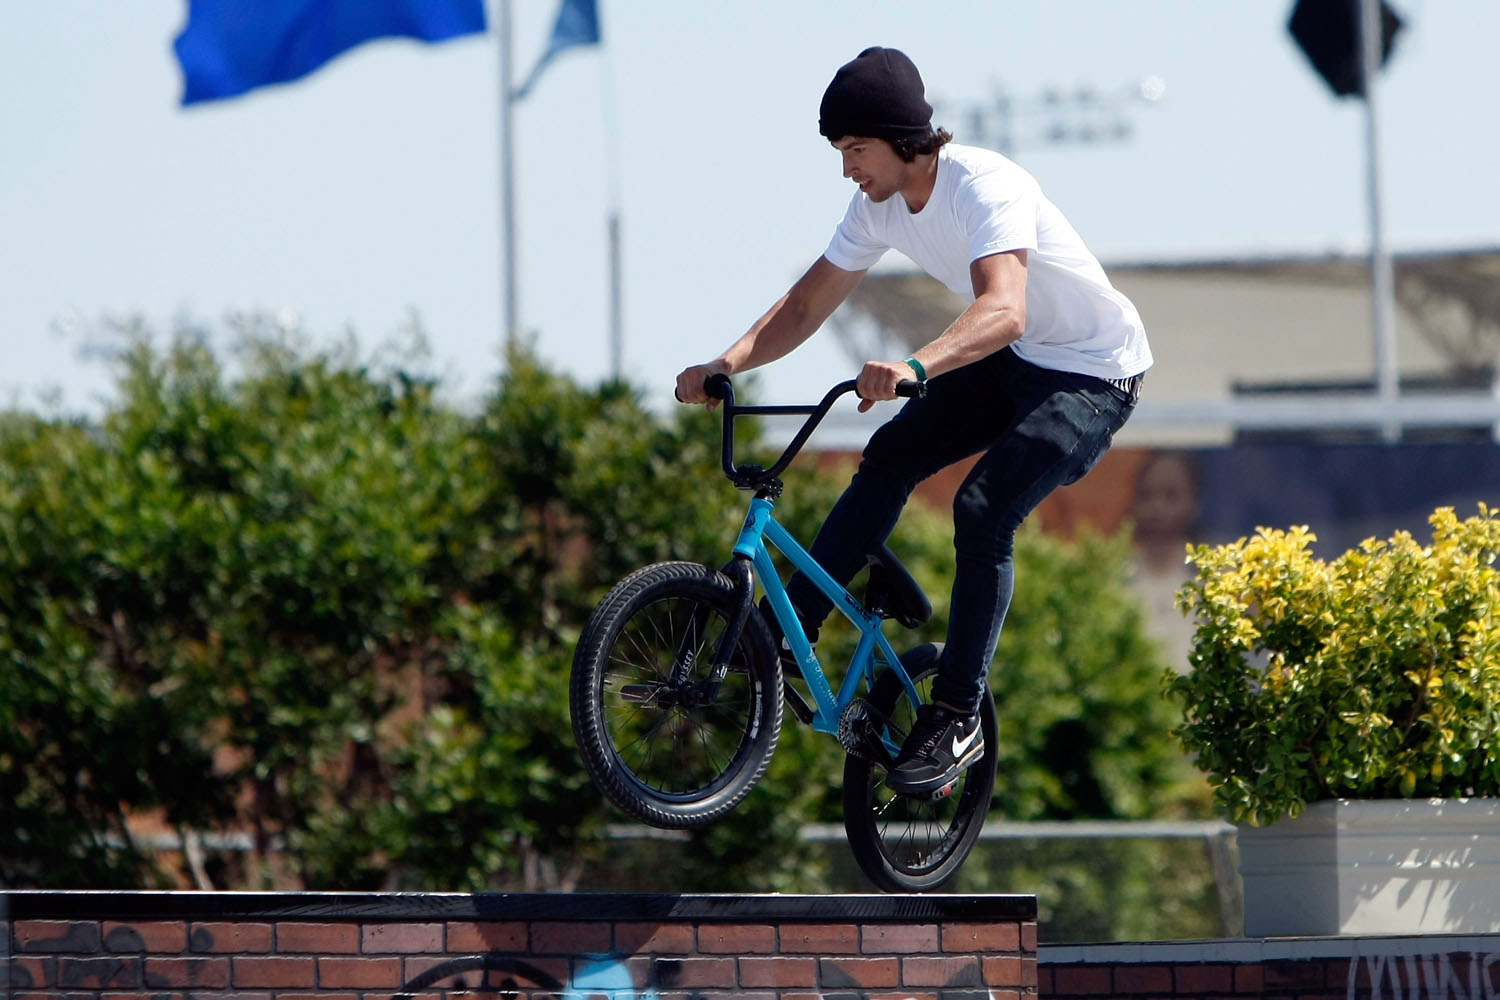 Garrett Reynolds competes in the BMX Freestyle Street event during X Games 15 at the Home Depot Center on August 1, 2009 in Carson, California.